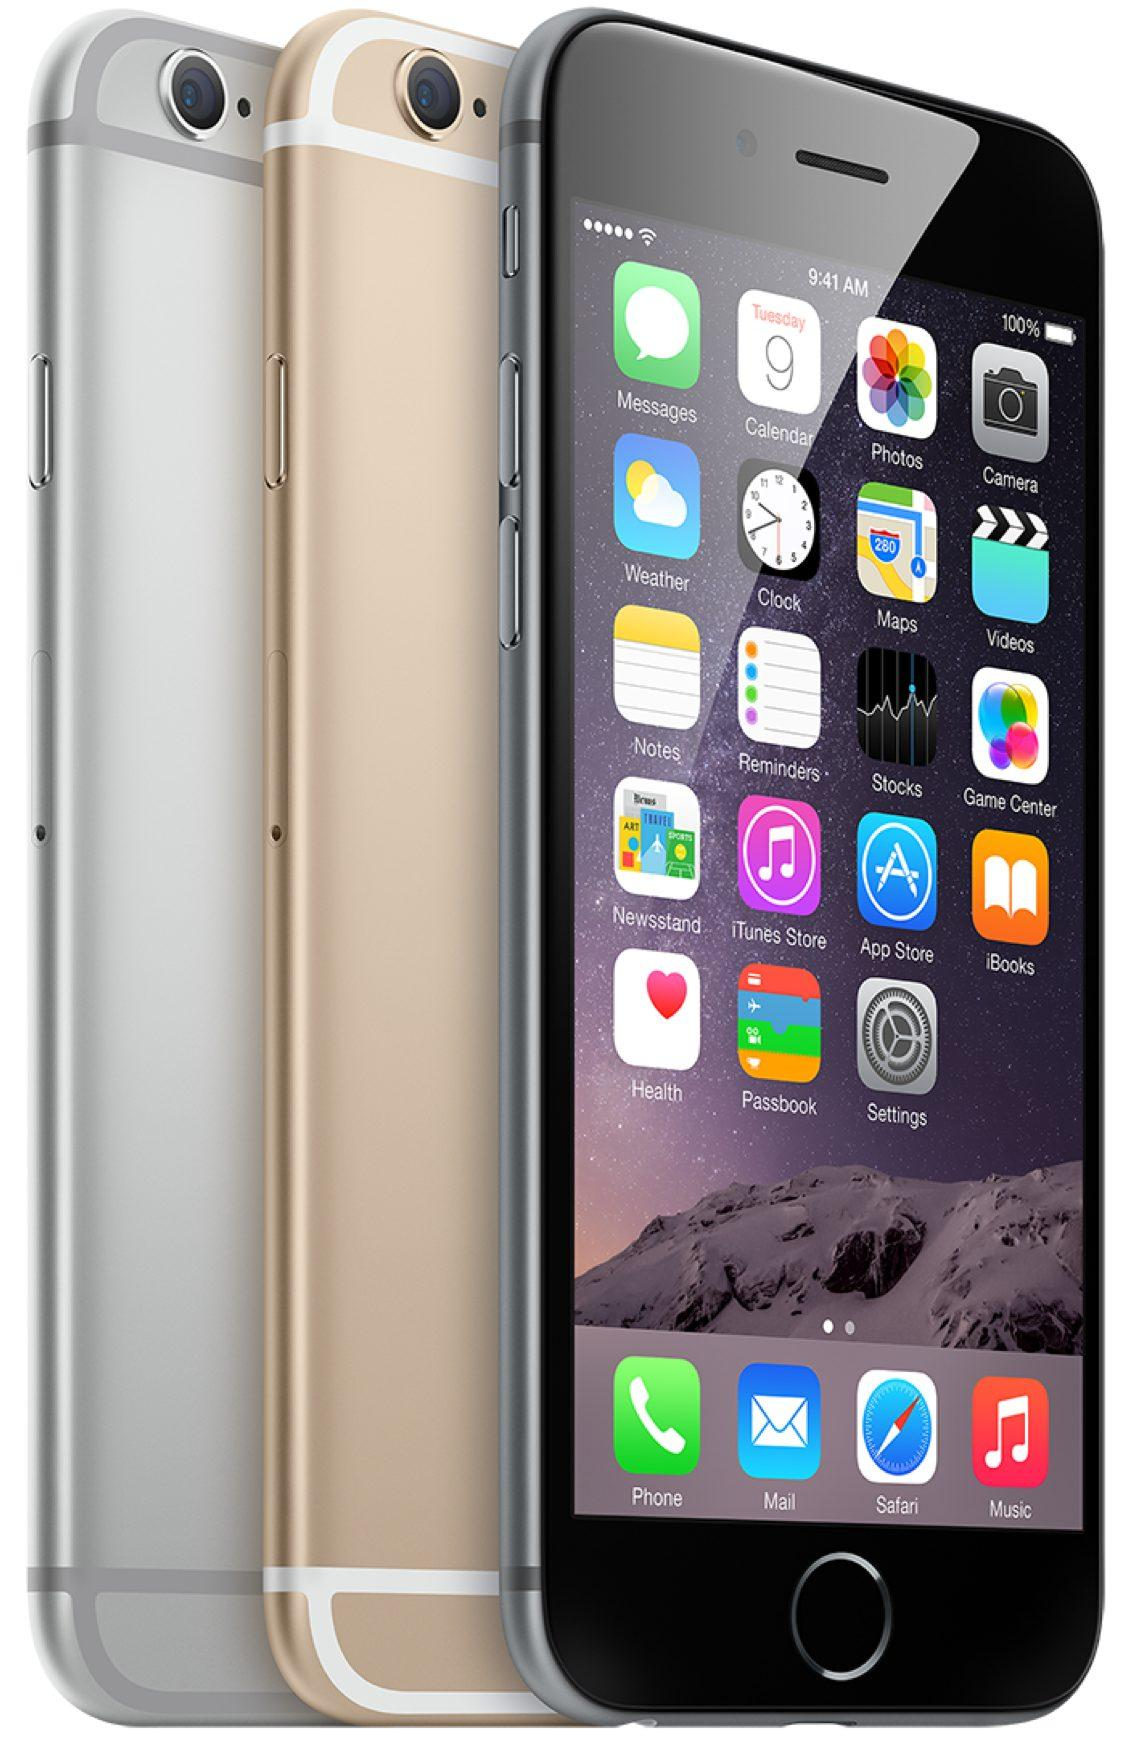 Apple Iphone 6 16 32 64 Gb (Gold, Grey & Silver) - Garansi 1 tahun